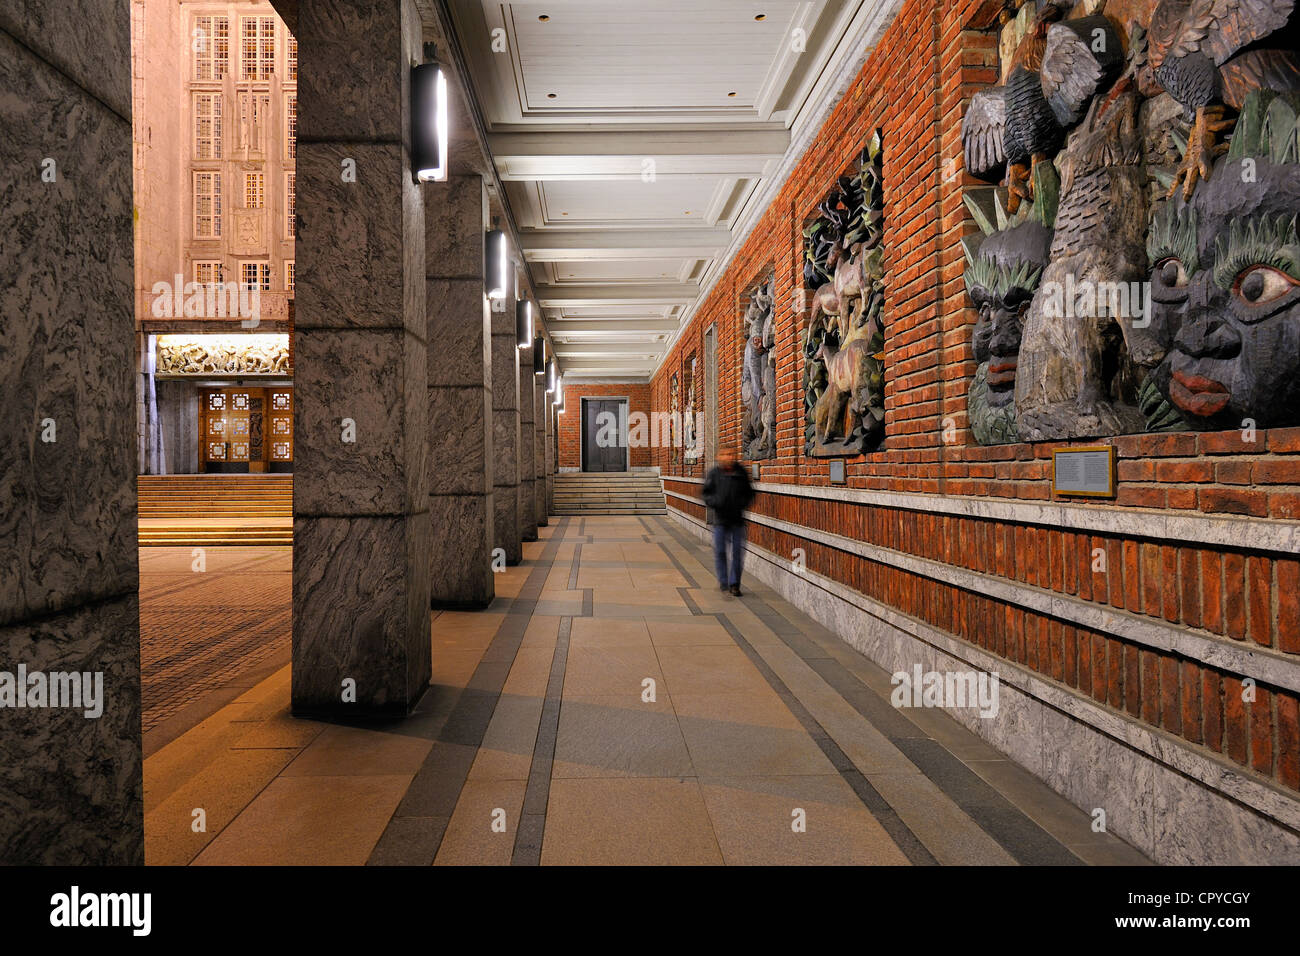 Norway, Oslo, Town Hall, bas reliefs with Viking myths - Stock Image